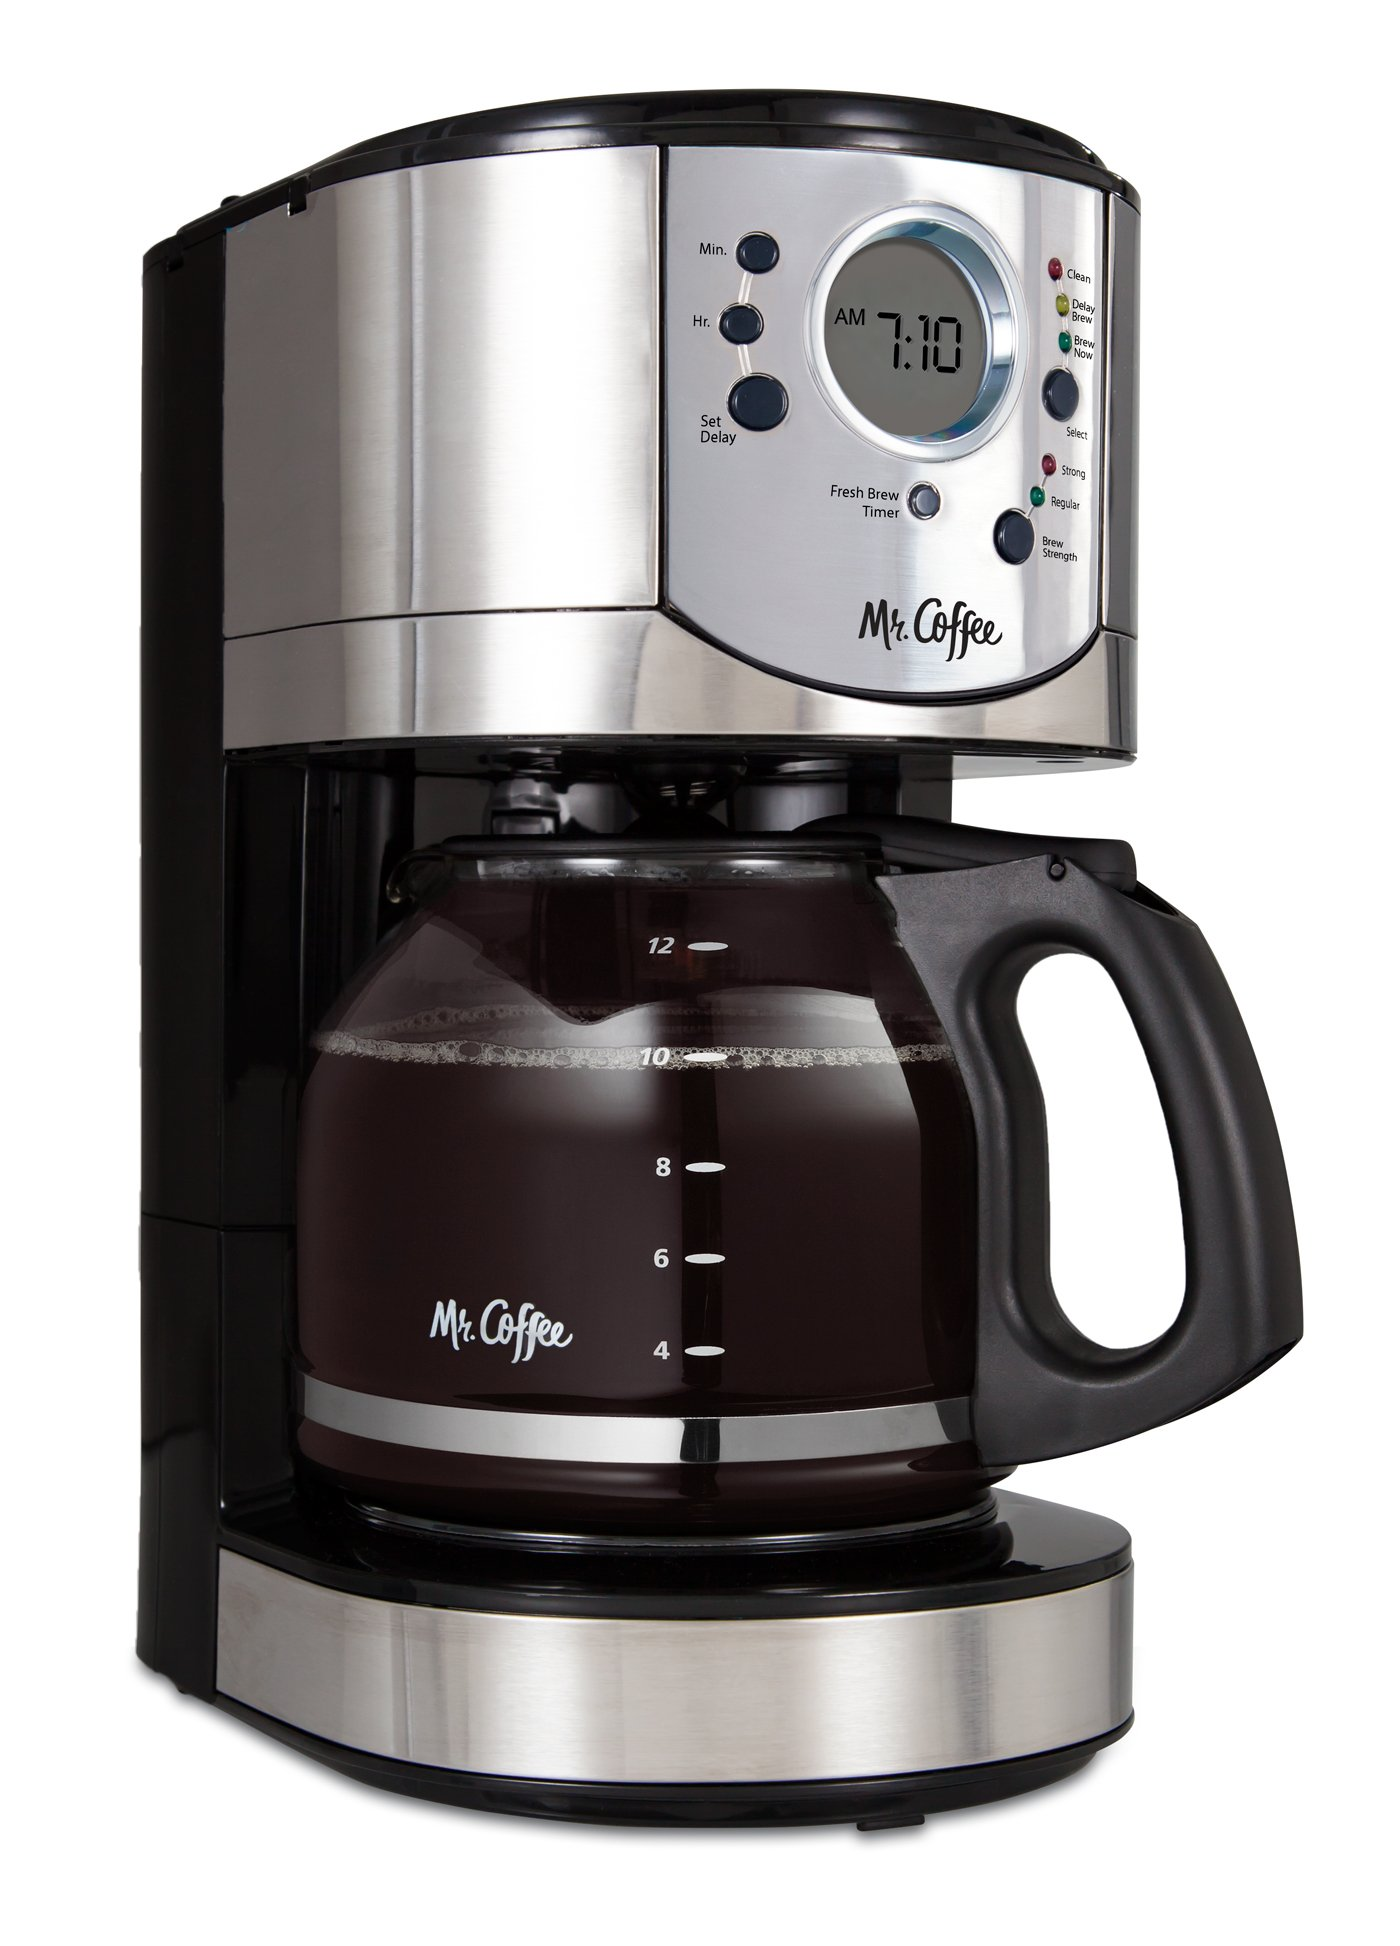 Mr. Coffee 12-Cup Programmable Coffee Maker with Brew Strength Selector - BVMC-CJX31-AM by Mr. Coffee